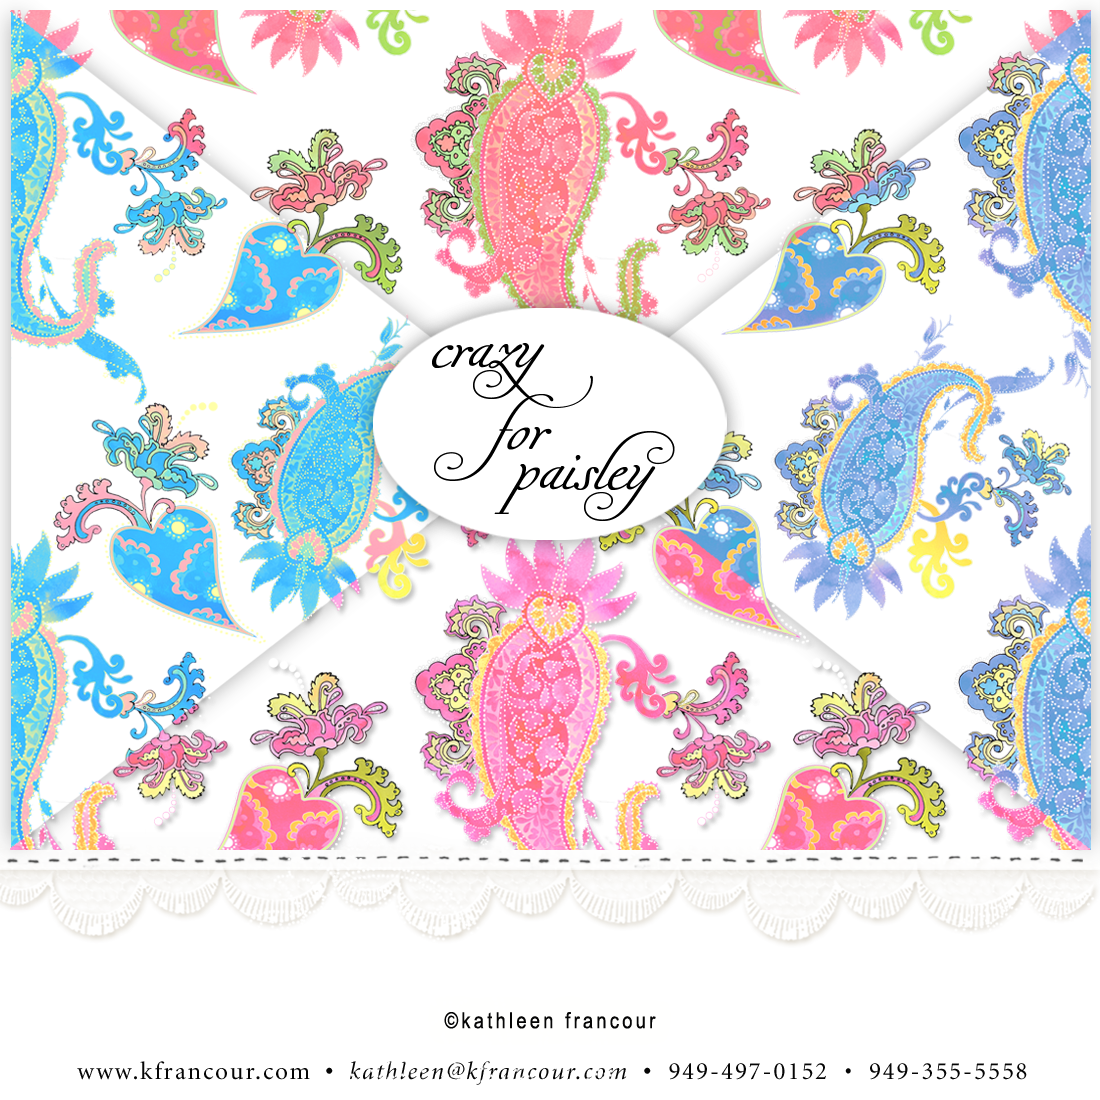 CRAZY FOR PAISLEY GALLERY PG@100dpi.png